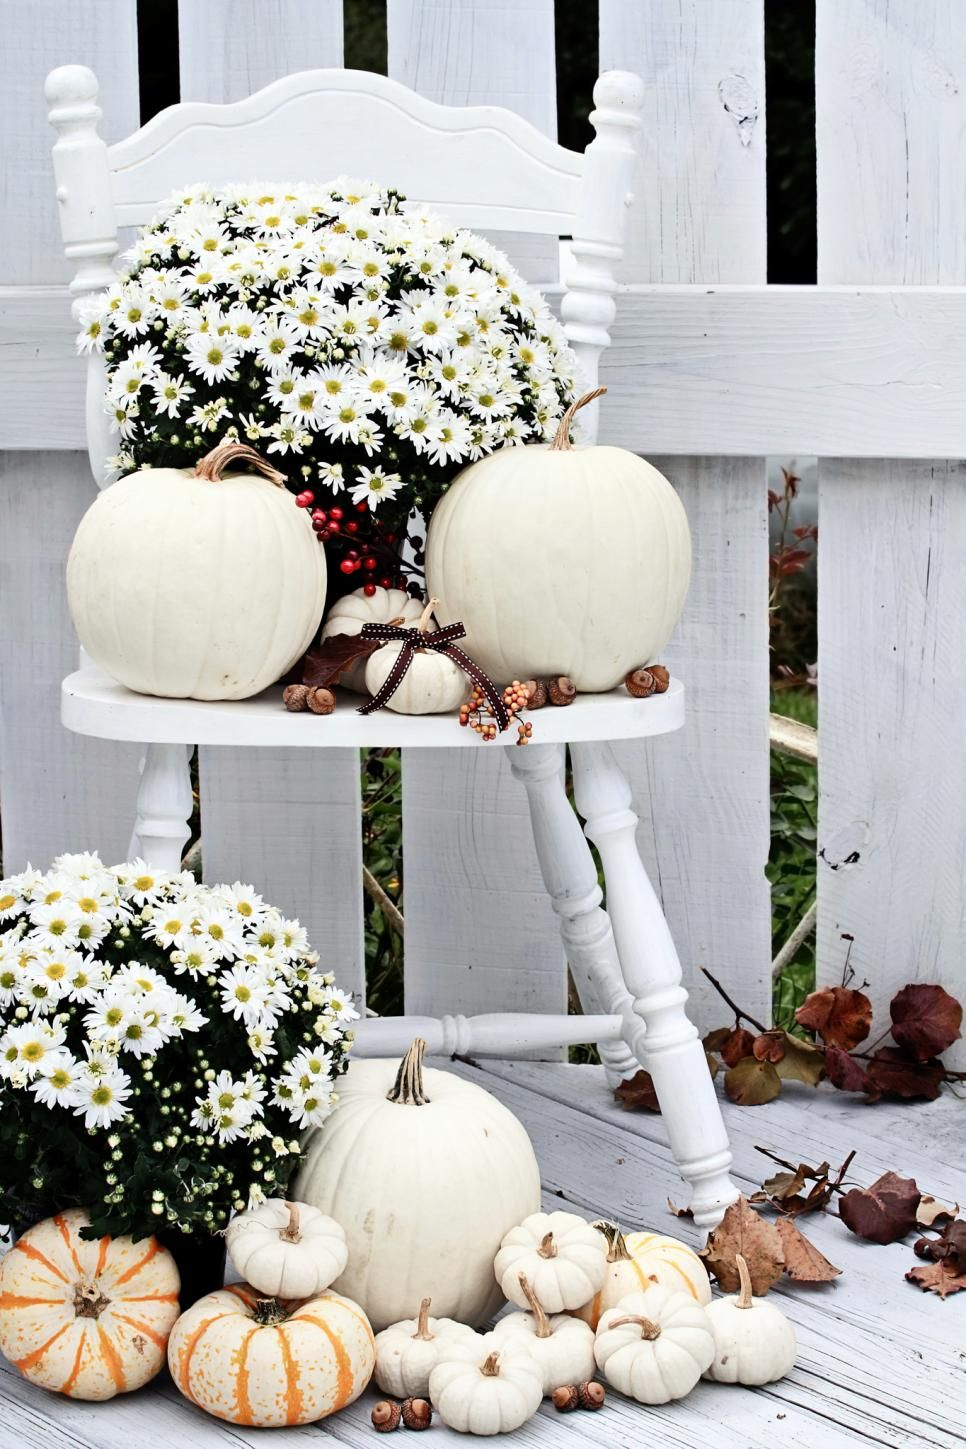 10 Surprising Ways to Decorate With Pumpkins